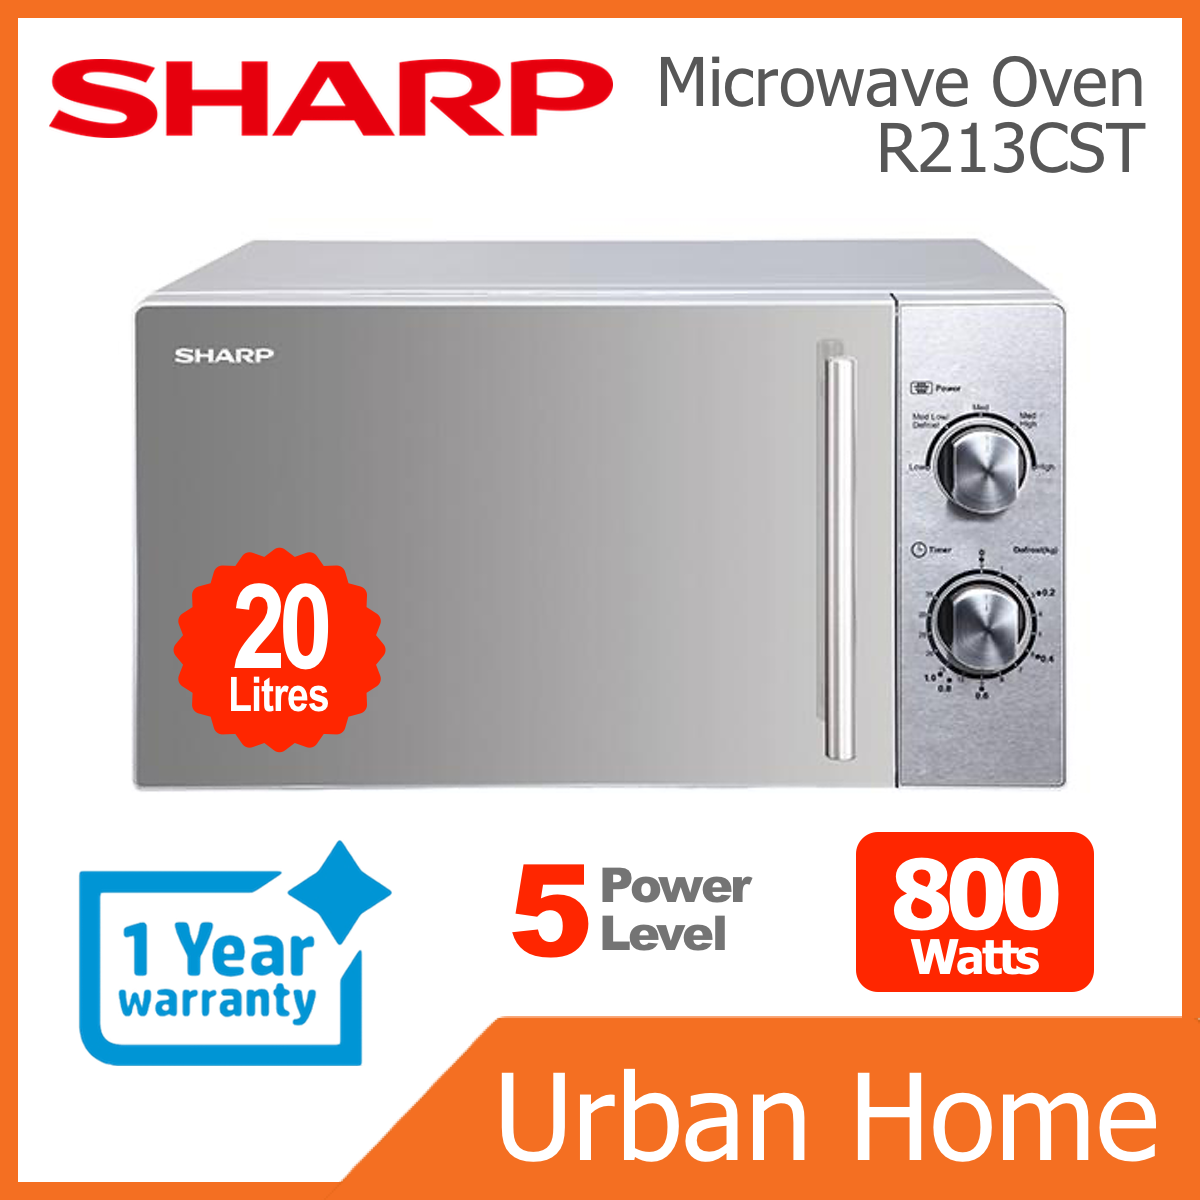 SHARP 20L 800w Mechanical Microwave Oven (R213CST)